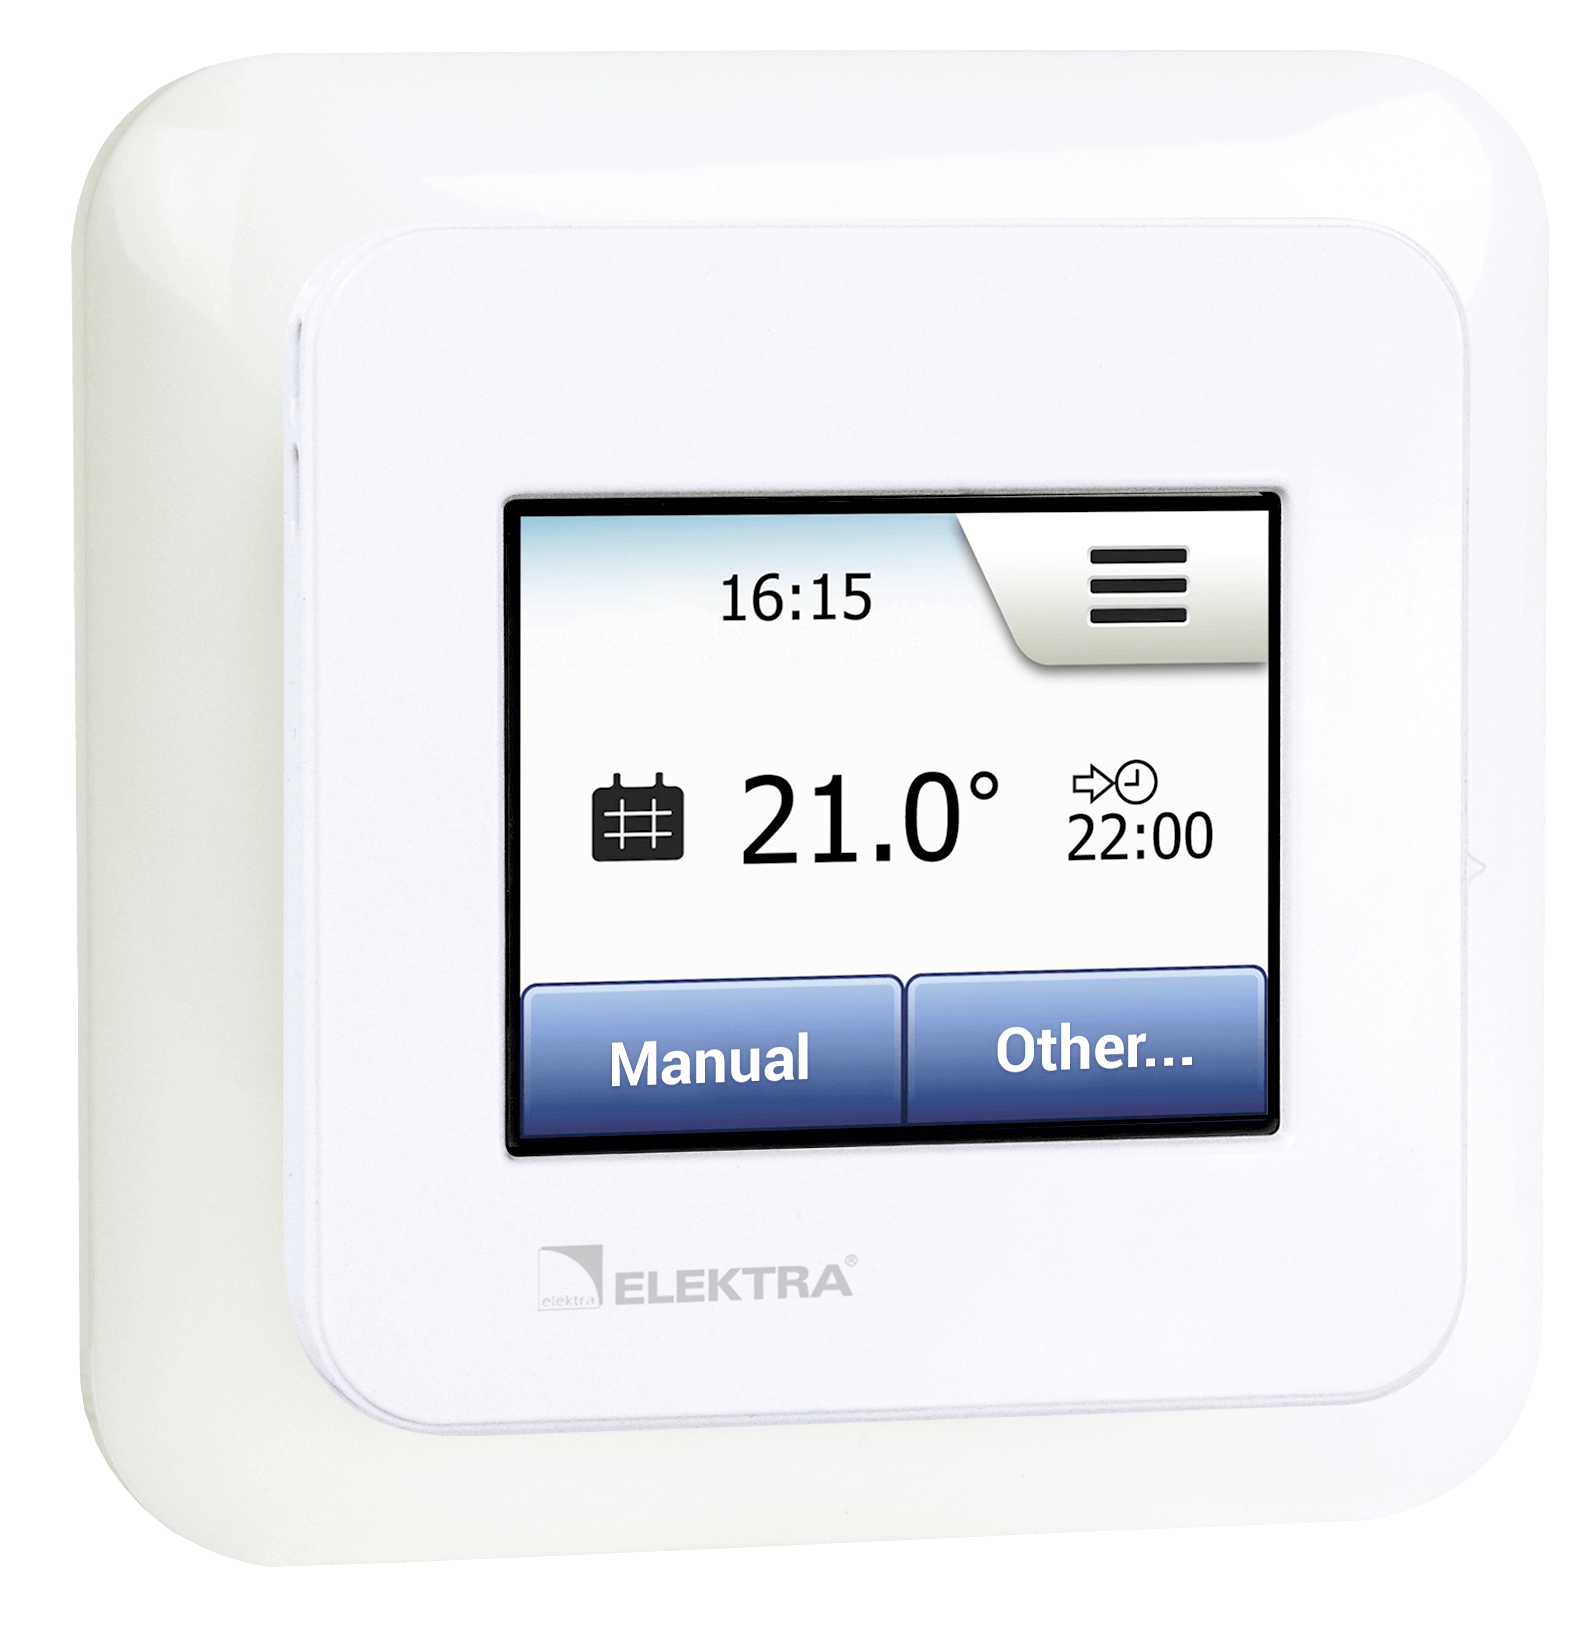 ELEKTR OCD5 1999 Thermostat - Smart Touch-Screen Heat Controller